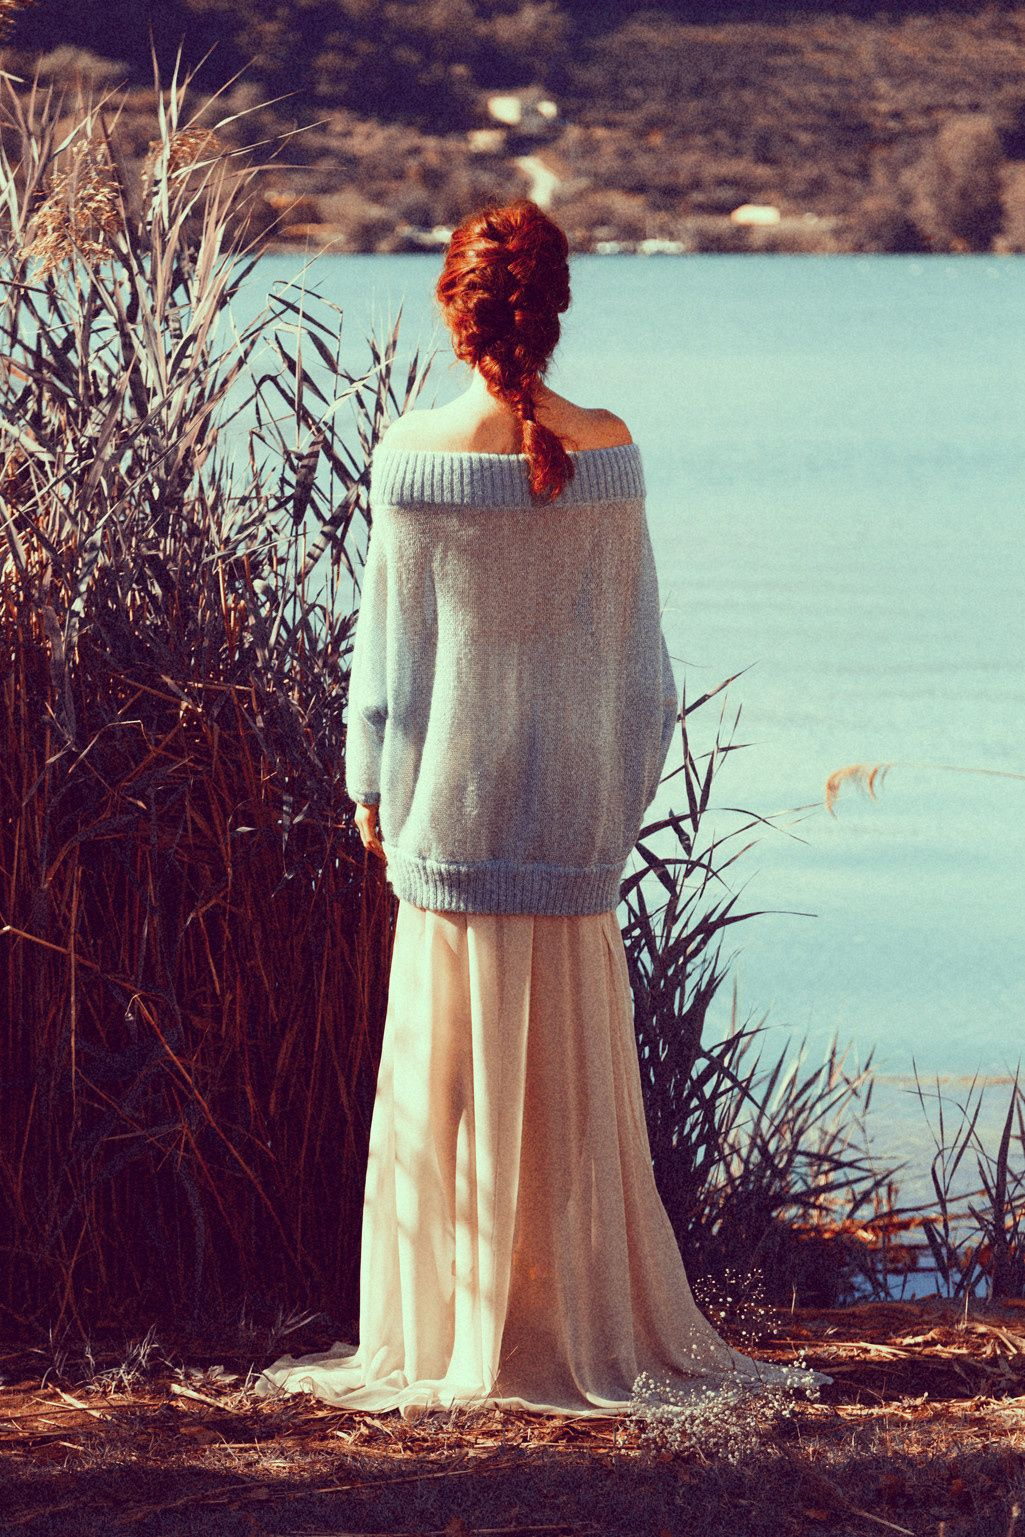 Lake shoulders - A simple picture of a girl from behind by the lake.